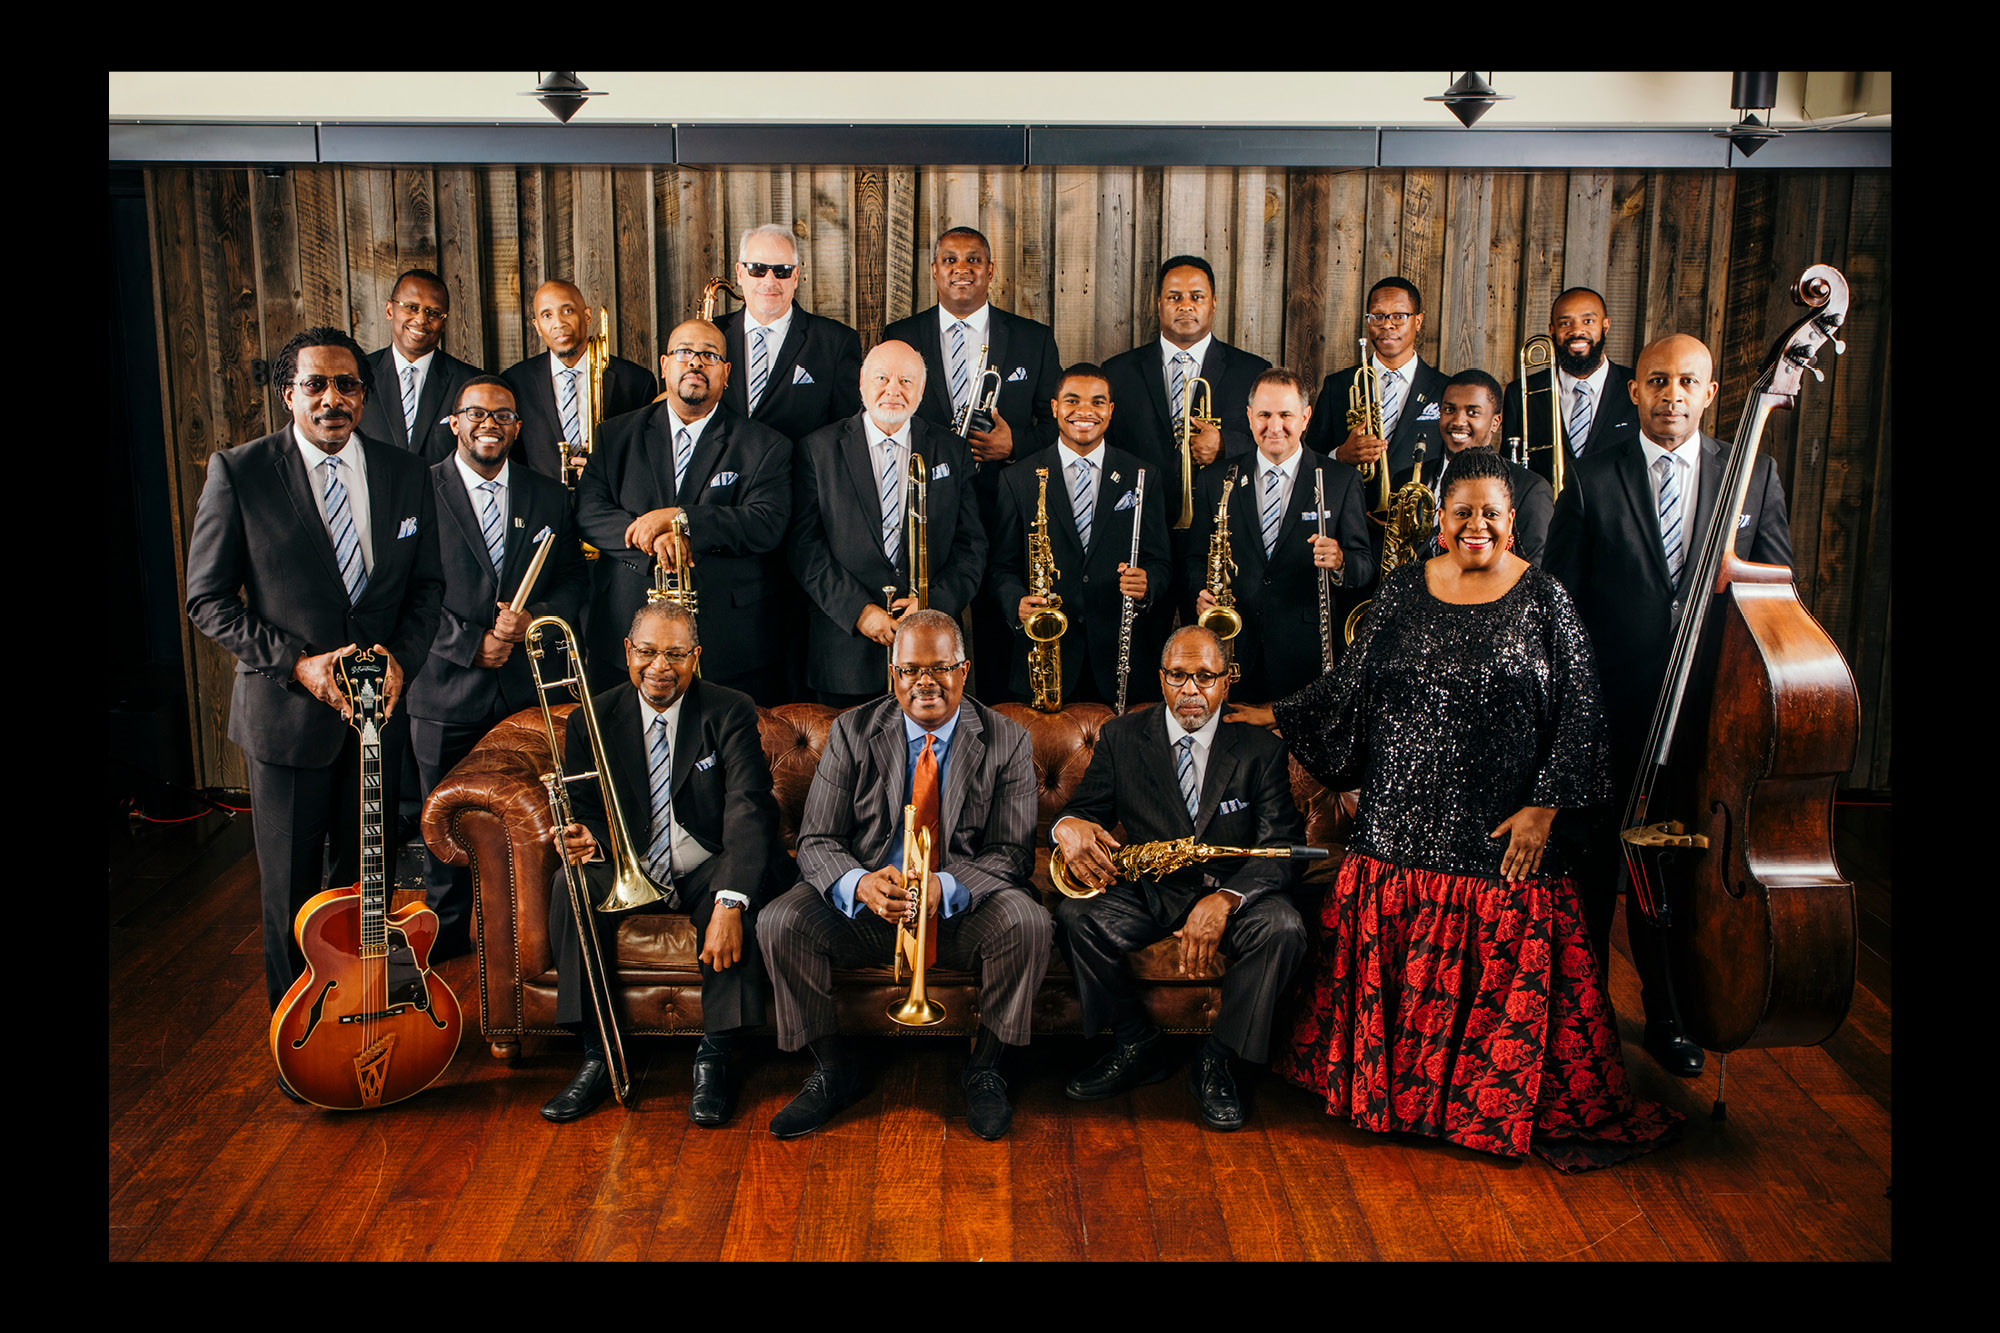 Photograph of The Count Basie Orchestra.